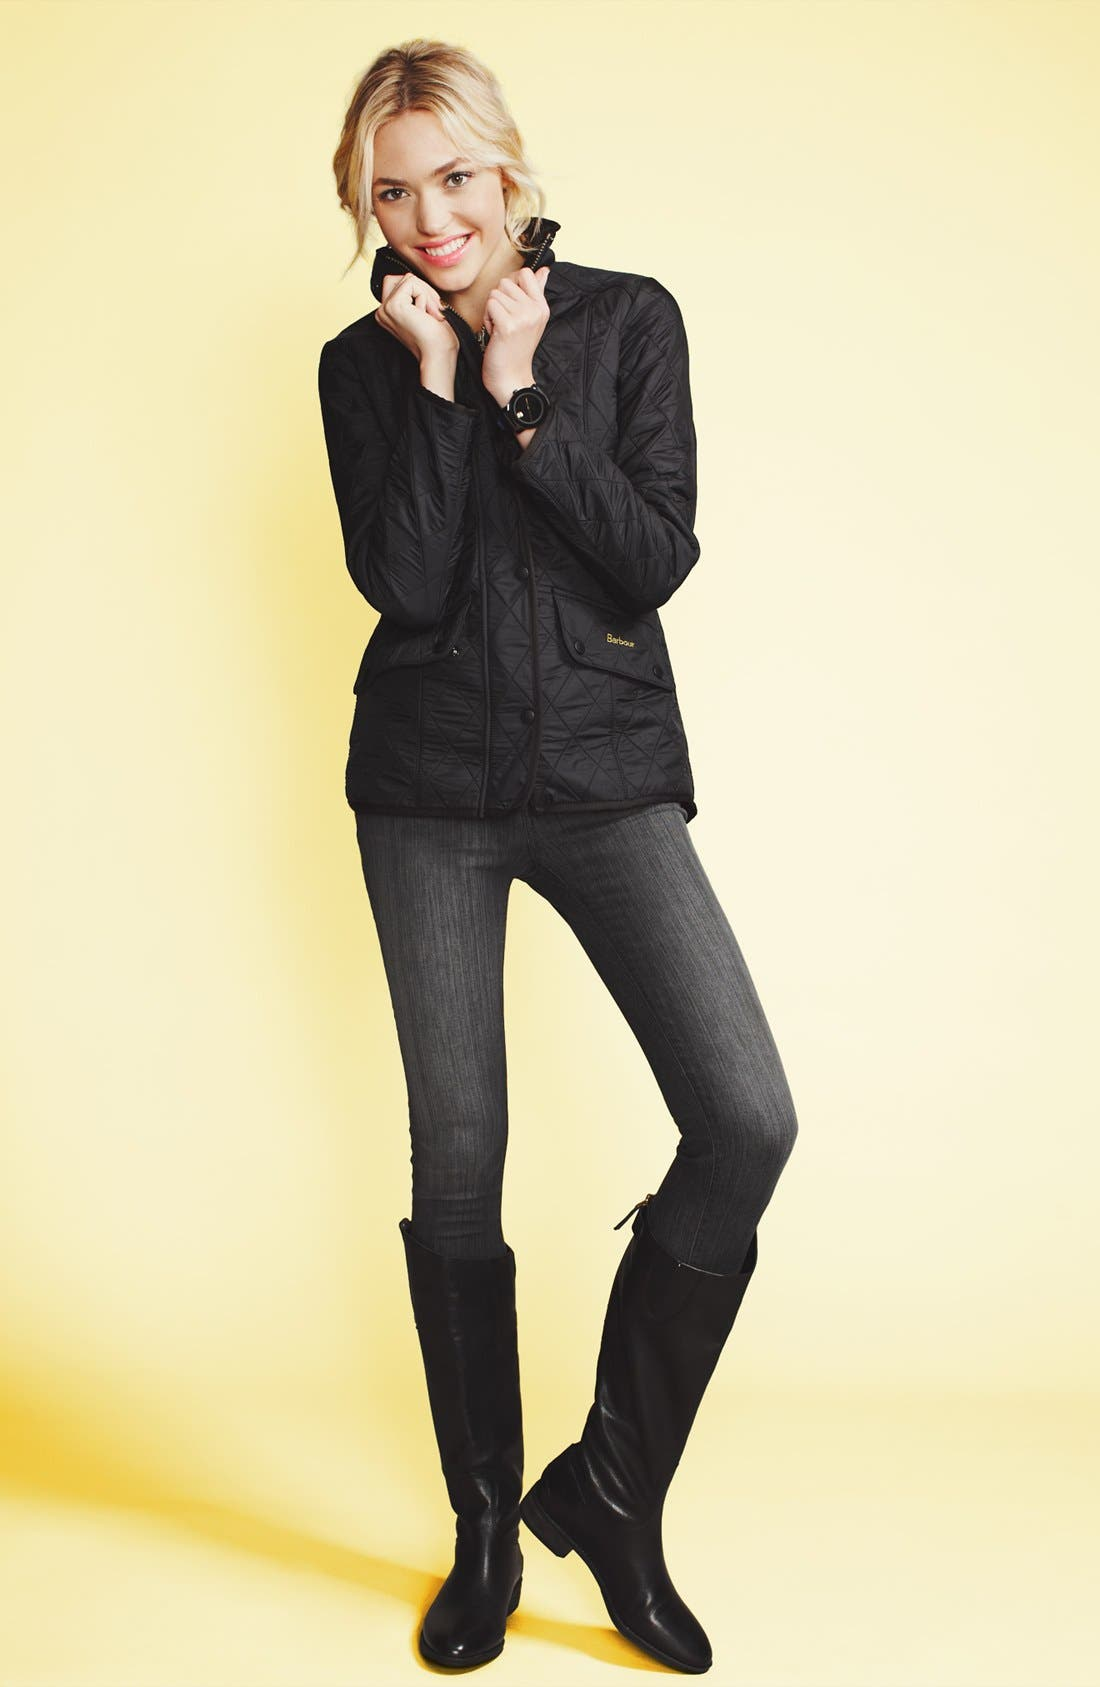 Alternate Image 1 Selected - Barbour 'Calvary' Jacket, Burberry Brit Jeans & Sam Edelman Boots